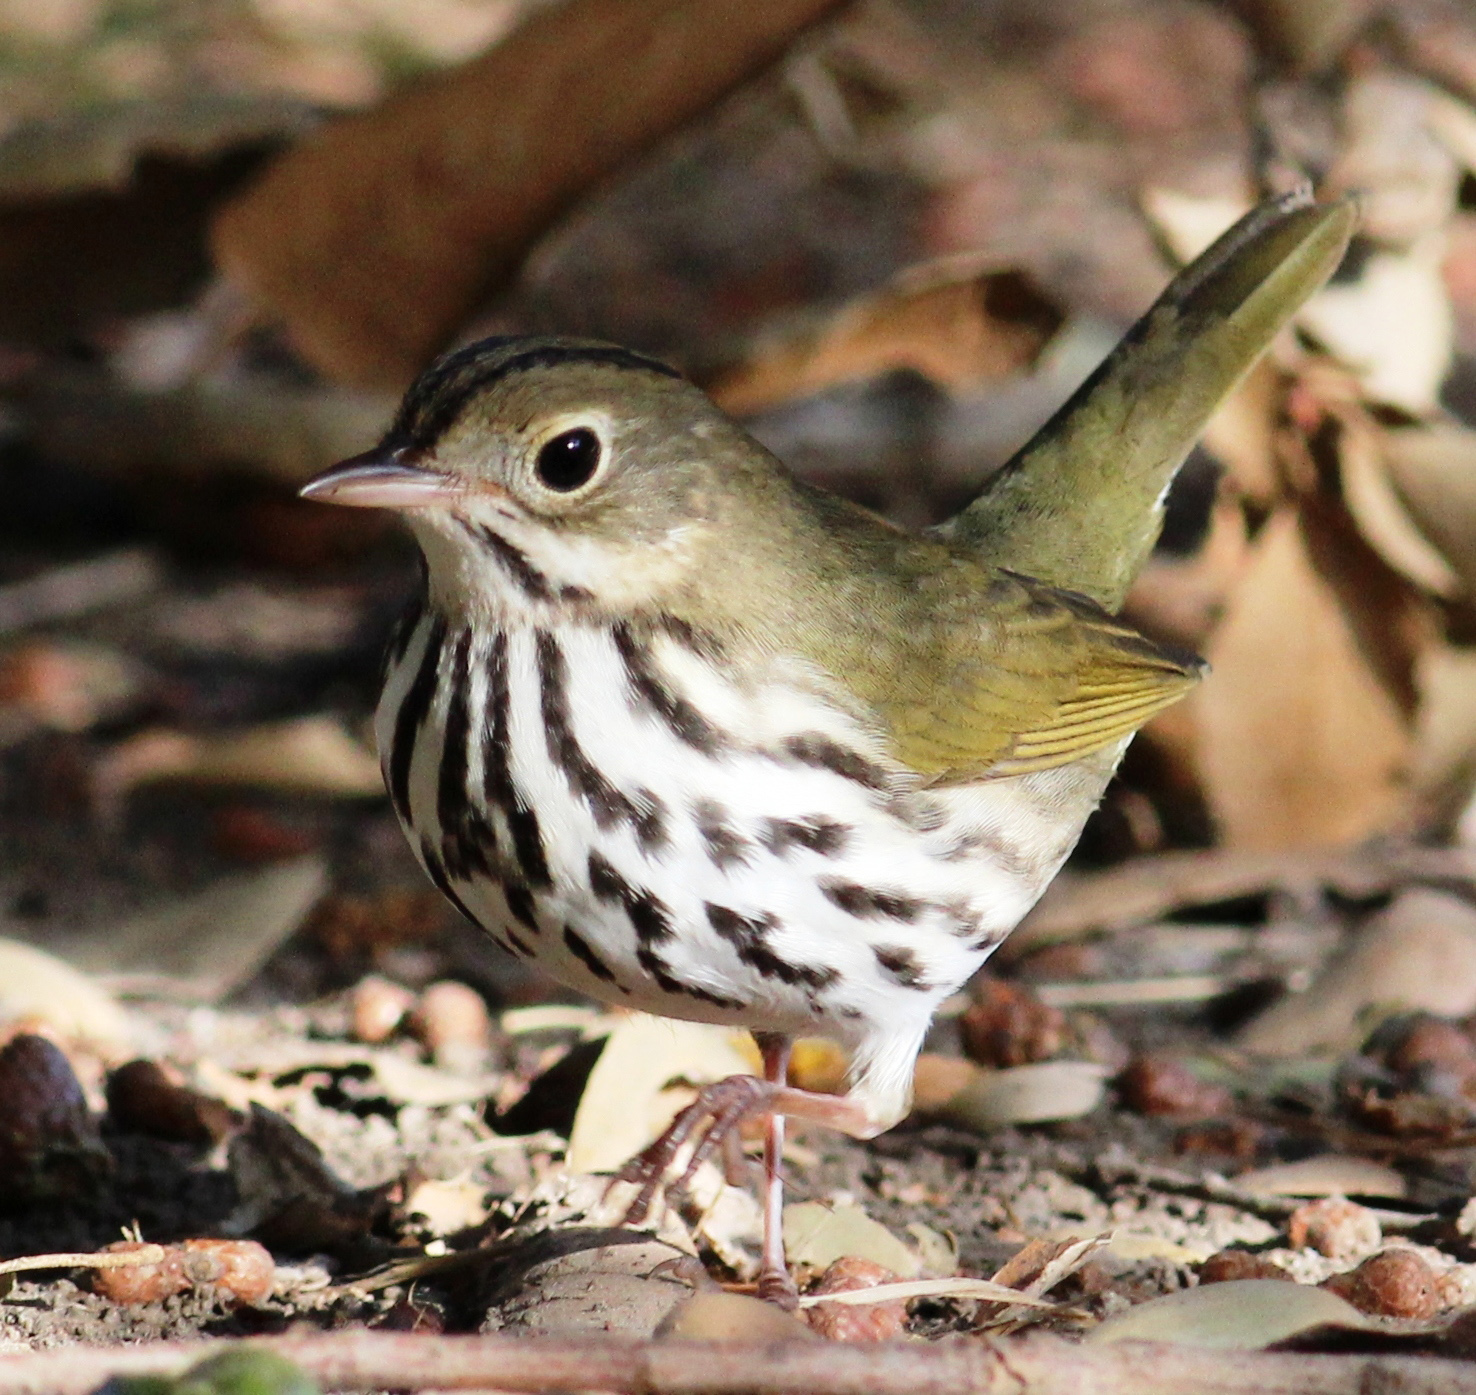 Persuasive Essay Ideas For High School Ovenbird Flickr Photo By Tom Benson High School Argumentative Essay Examples also Thesis Statement For Definition Essay Miniaturized Gps Tags Allow Tracking Of Small Songbirds For First  Thesis Statement Essay